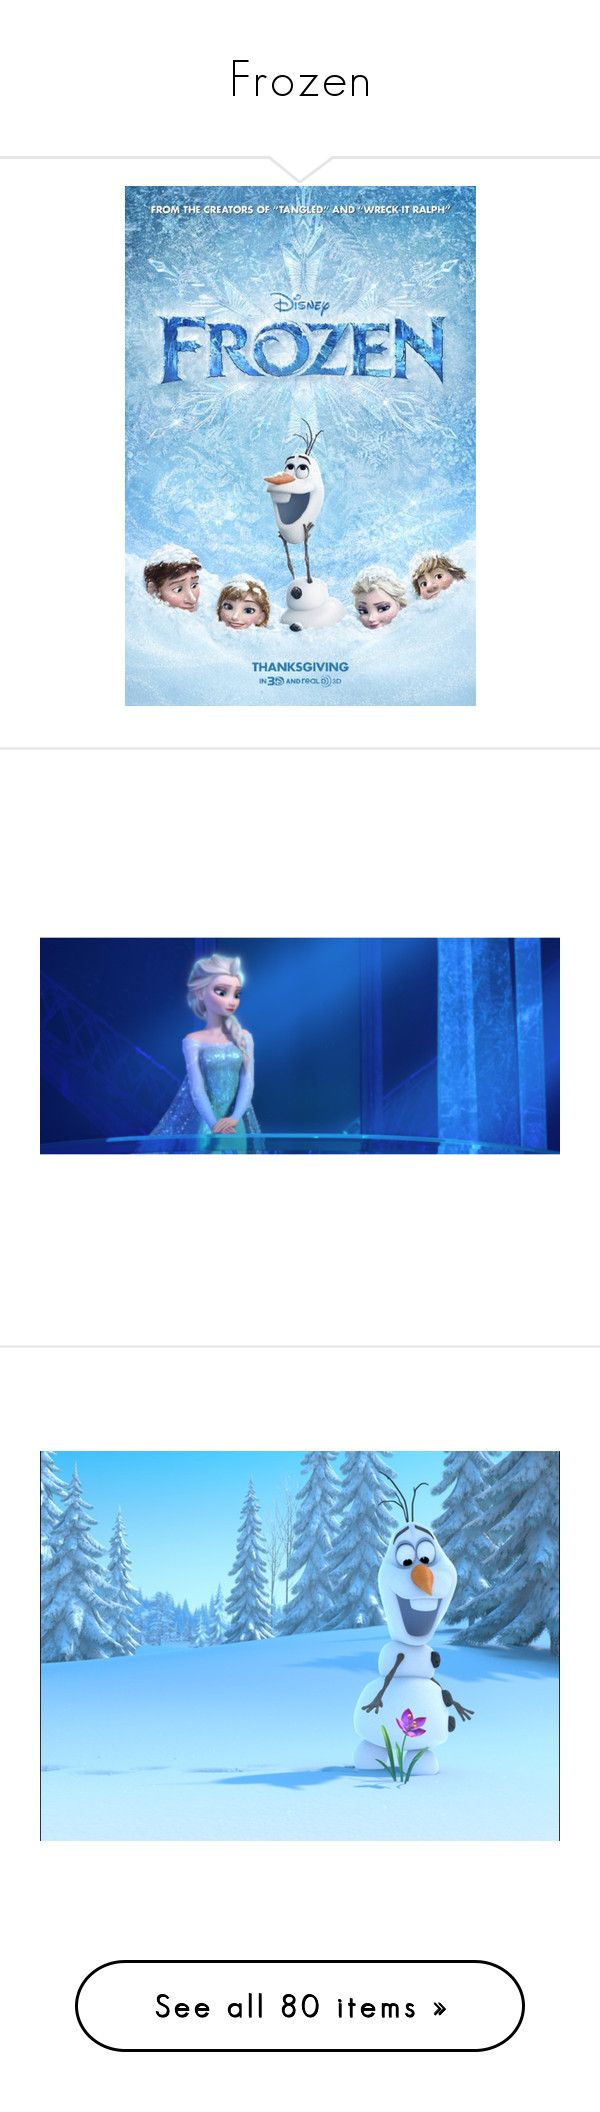 """""""Frozen"""" by thequeenofreading ❤ liked on Polyvore featuring disney, frozen, pictures, backgrounds, movies, extras, fillers, elsa, photos and home"""